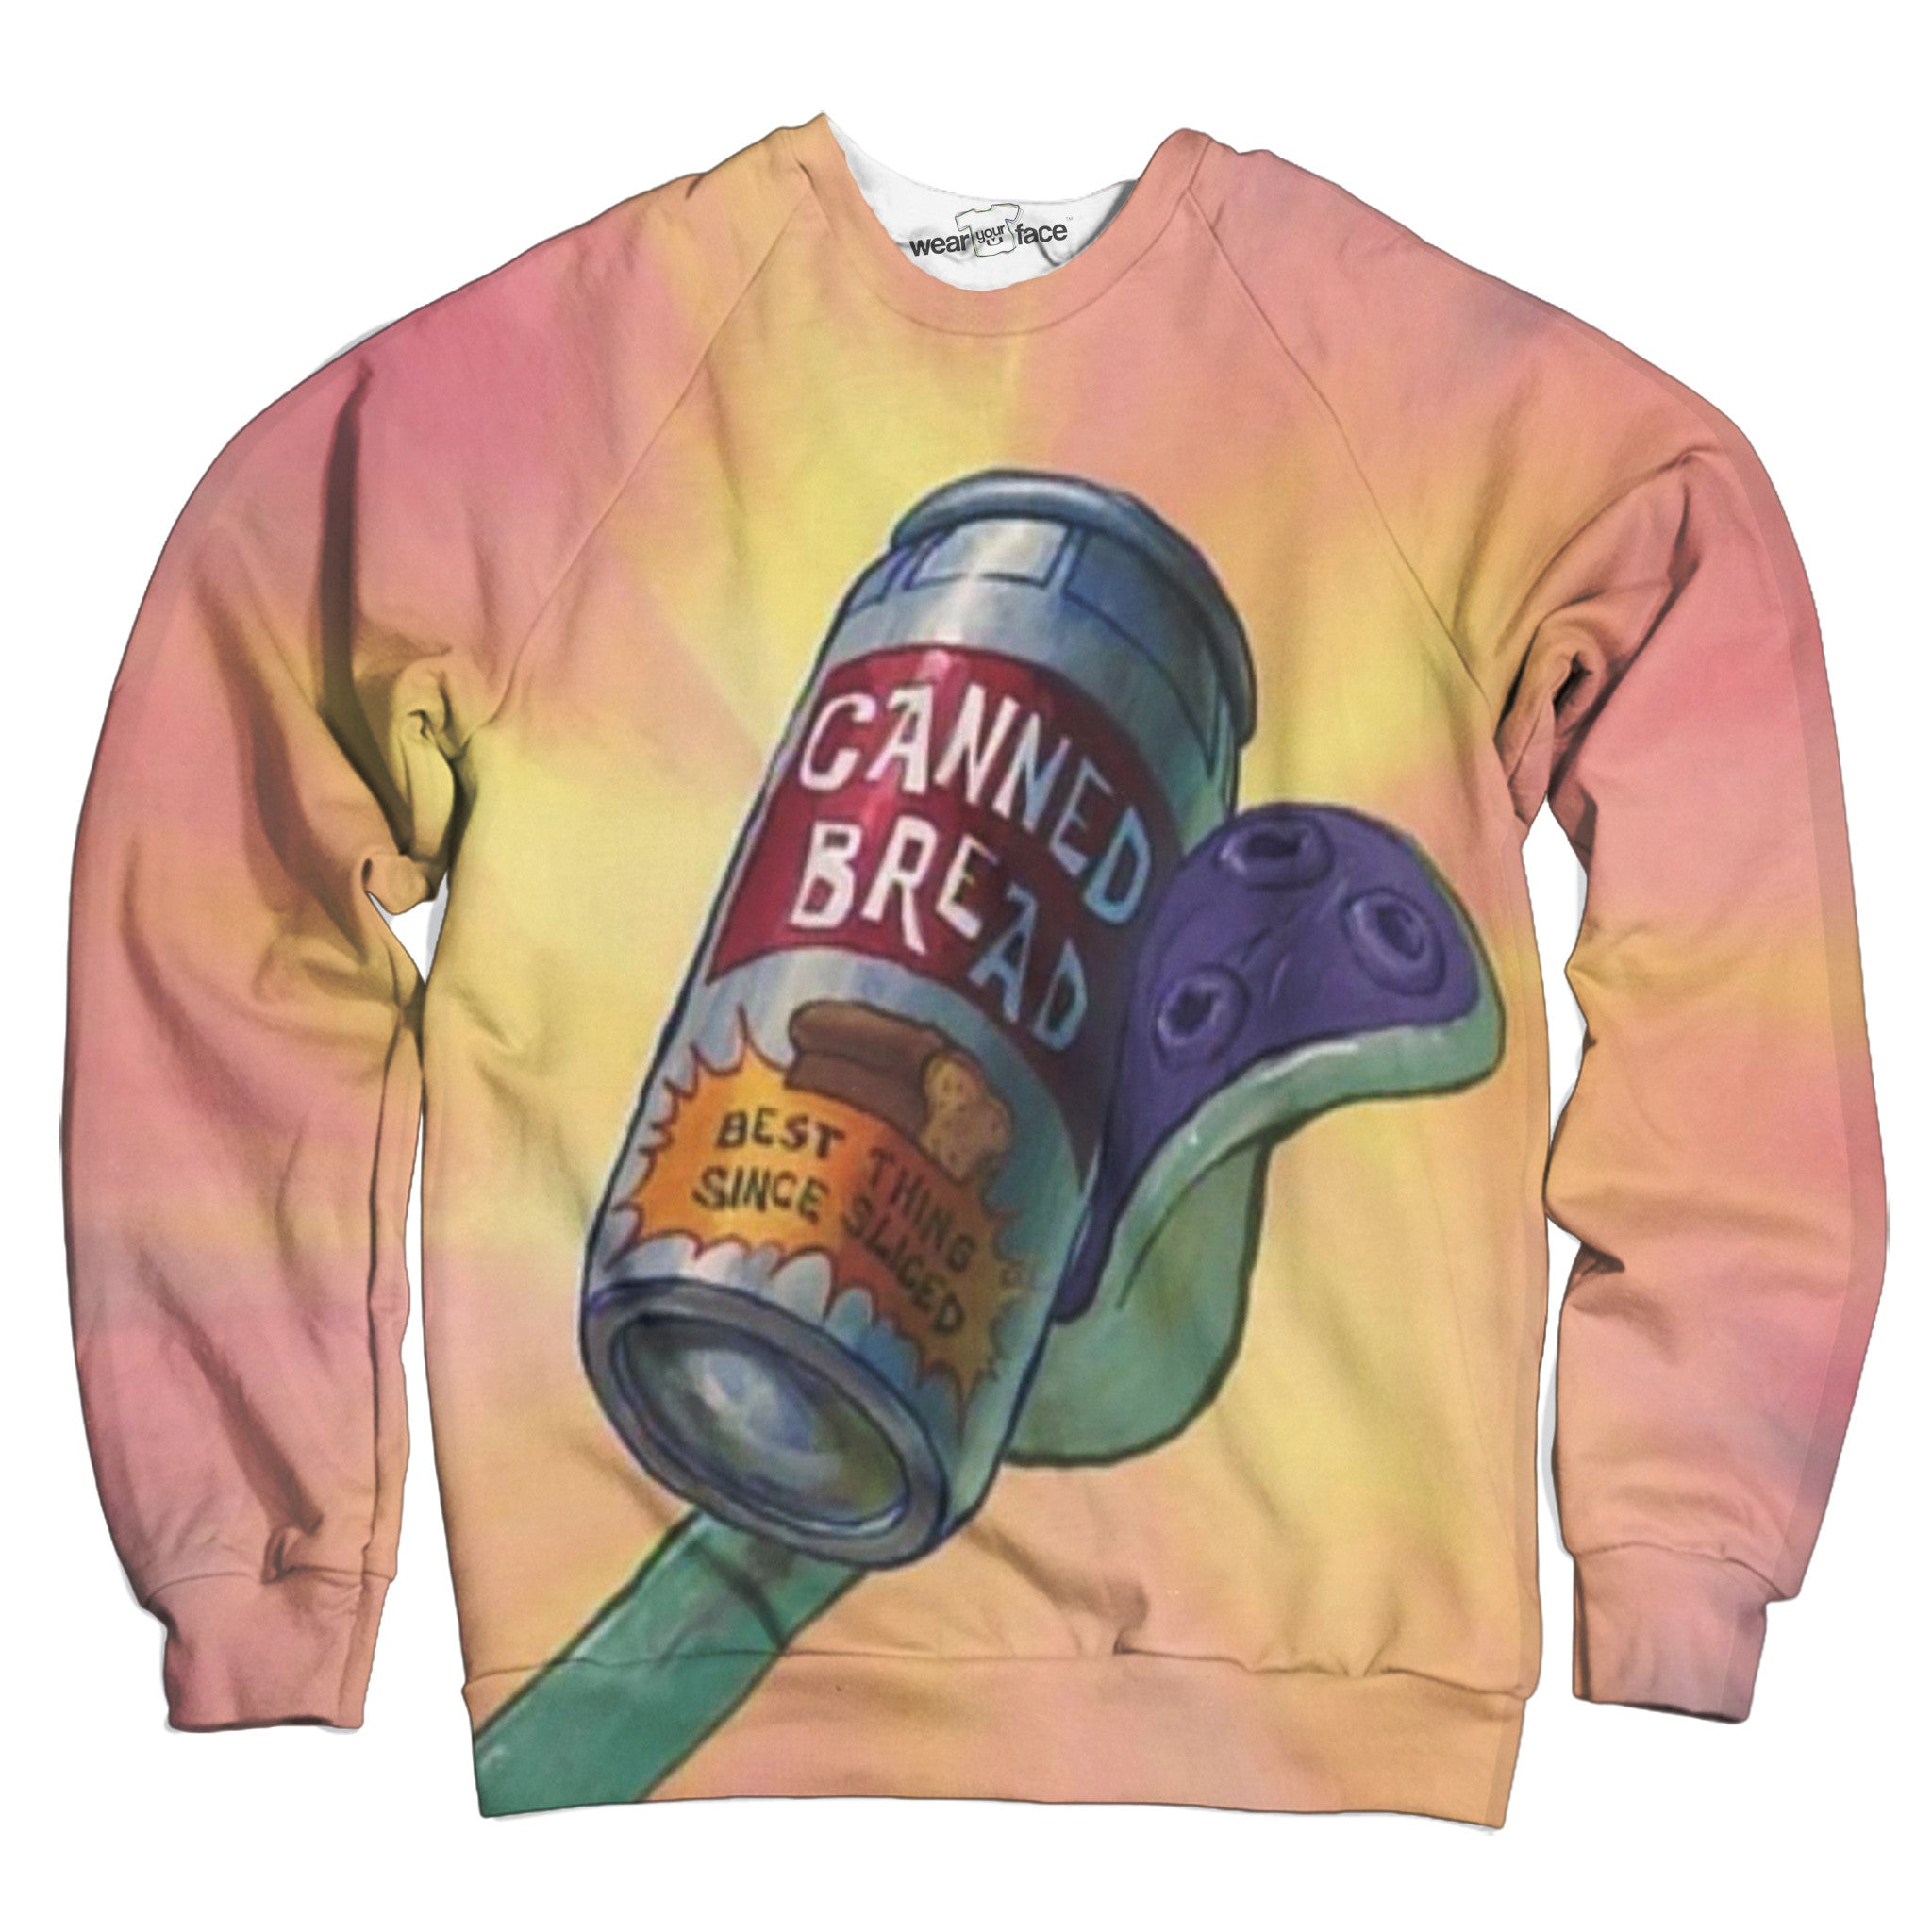 Canned Bread Sweatshirt